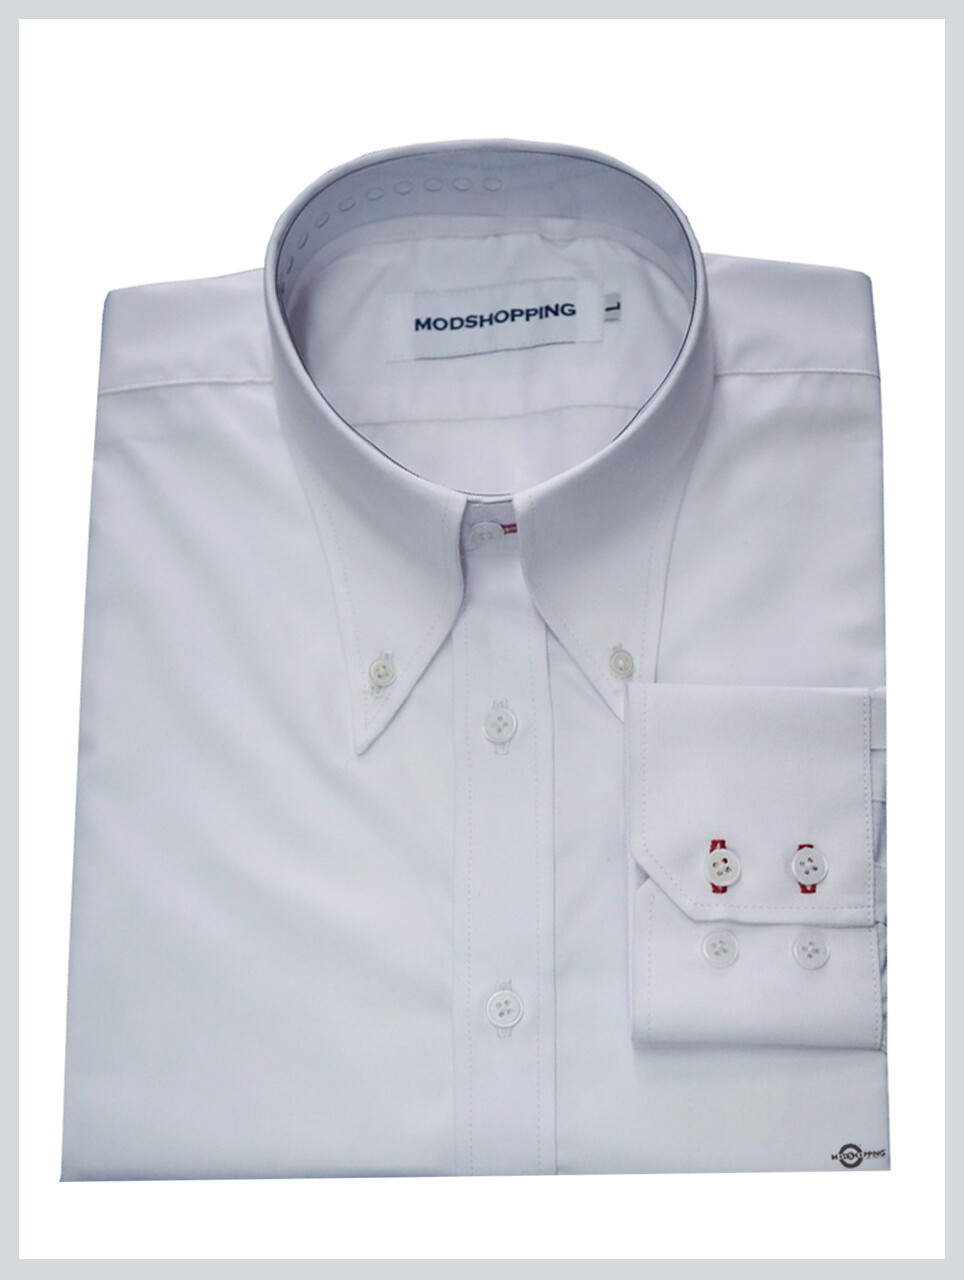 High Collar White Shirt| Formal Shirts For Men 60s Mod Style